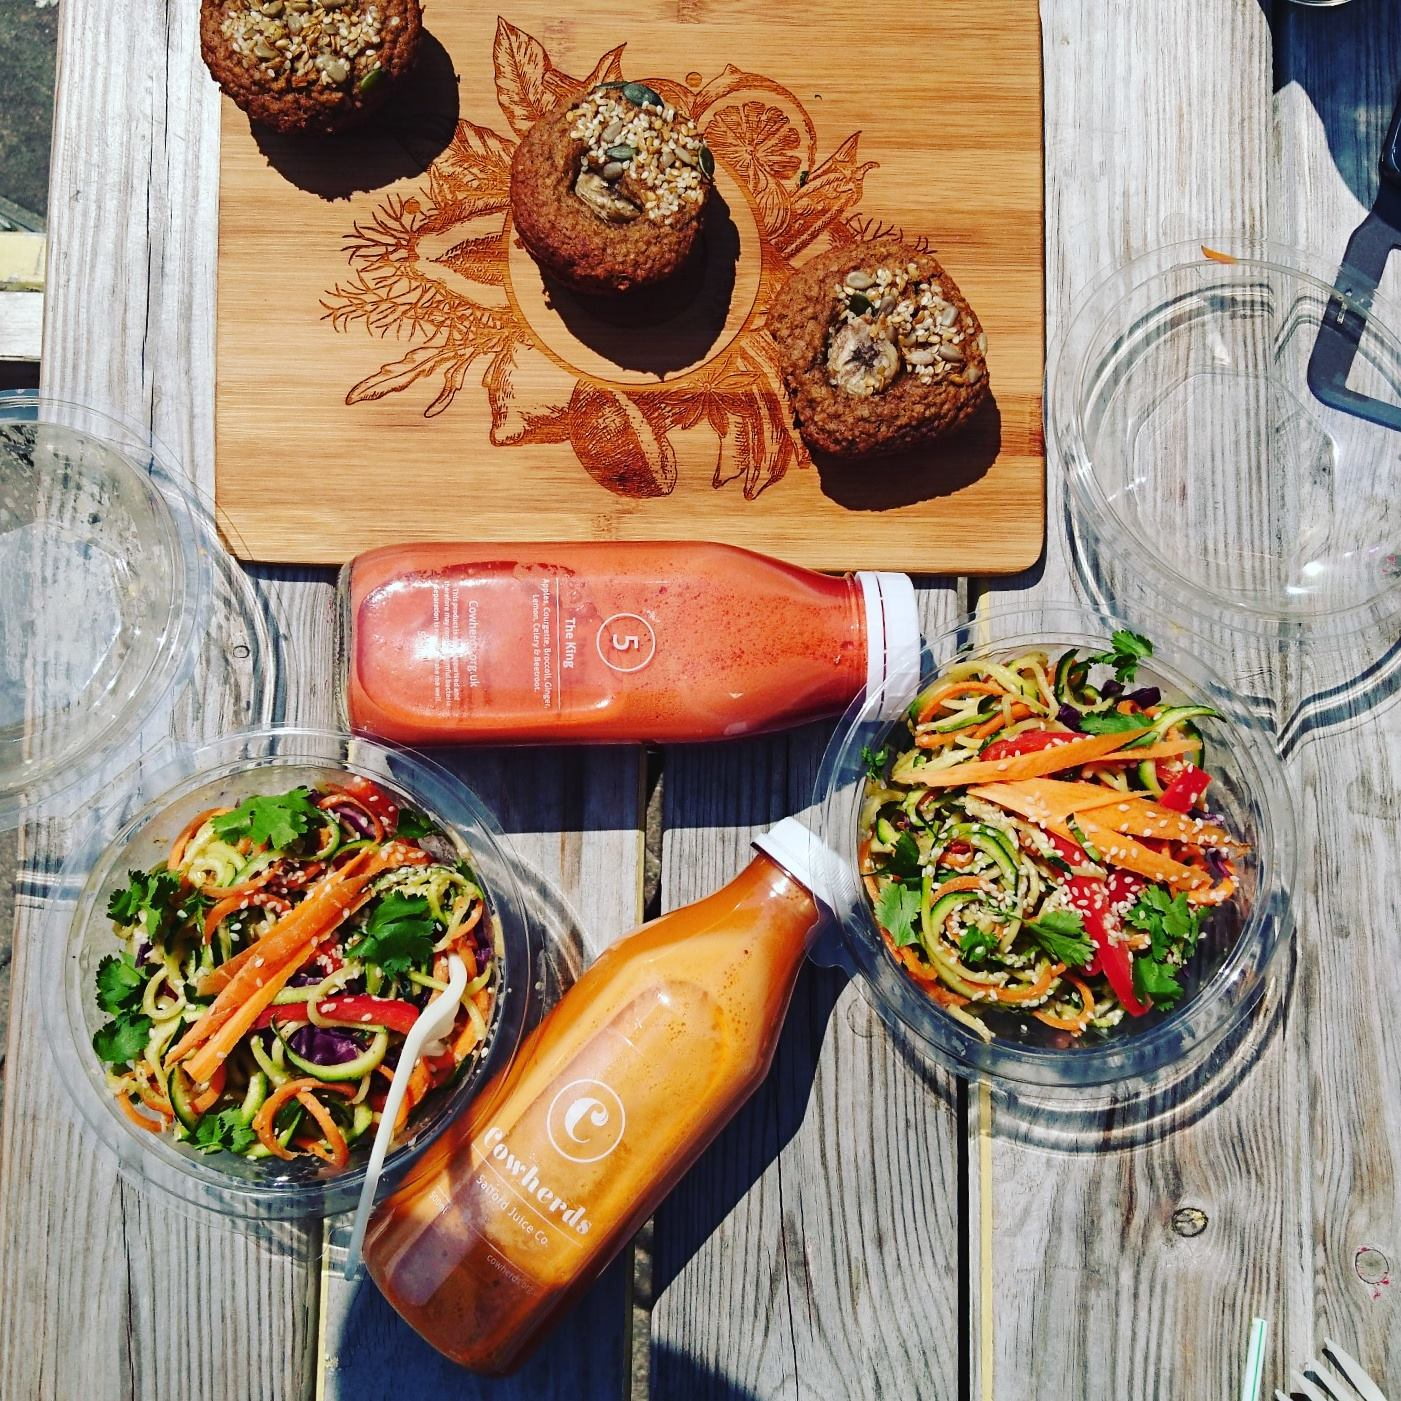 Guest Post How To Spend A Healthy Day In Manchester